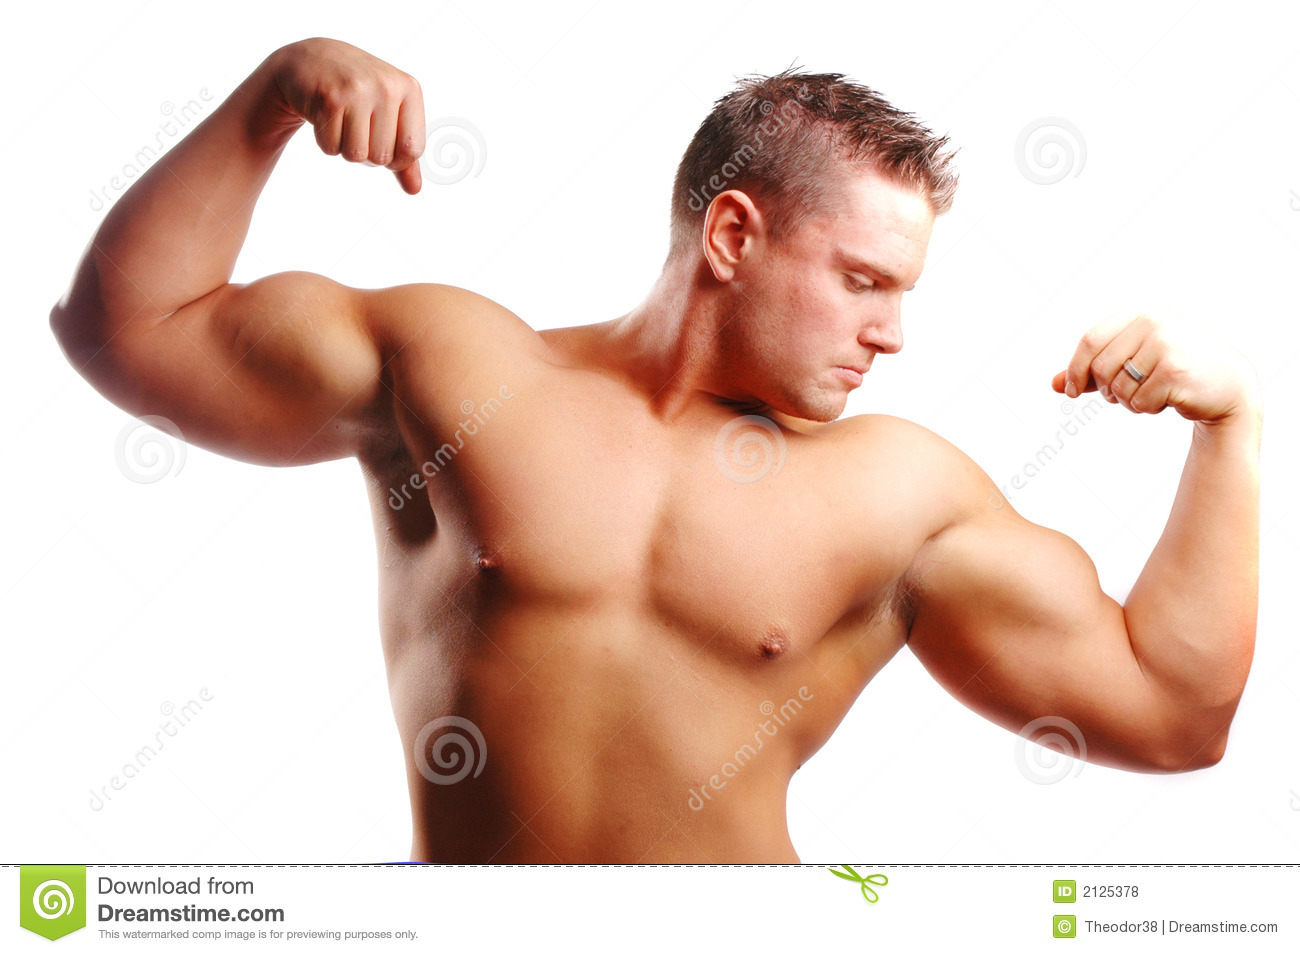 Body Builder Stock Photo Image Of Strength, Muscle, Builder - 2125378-8561